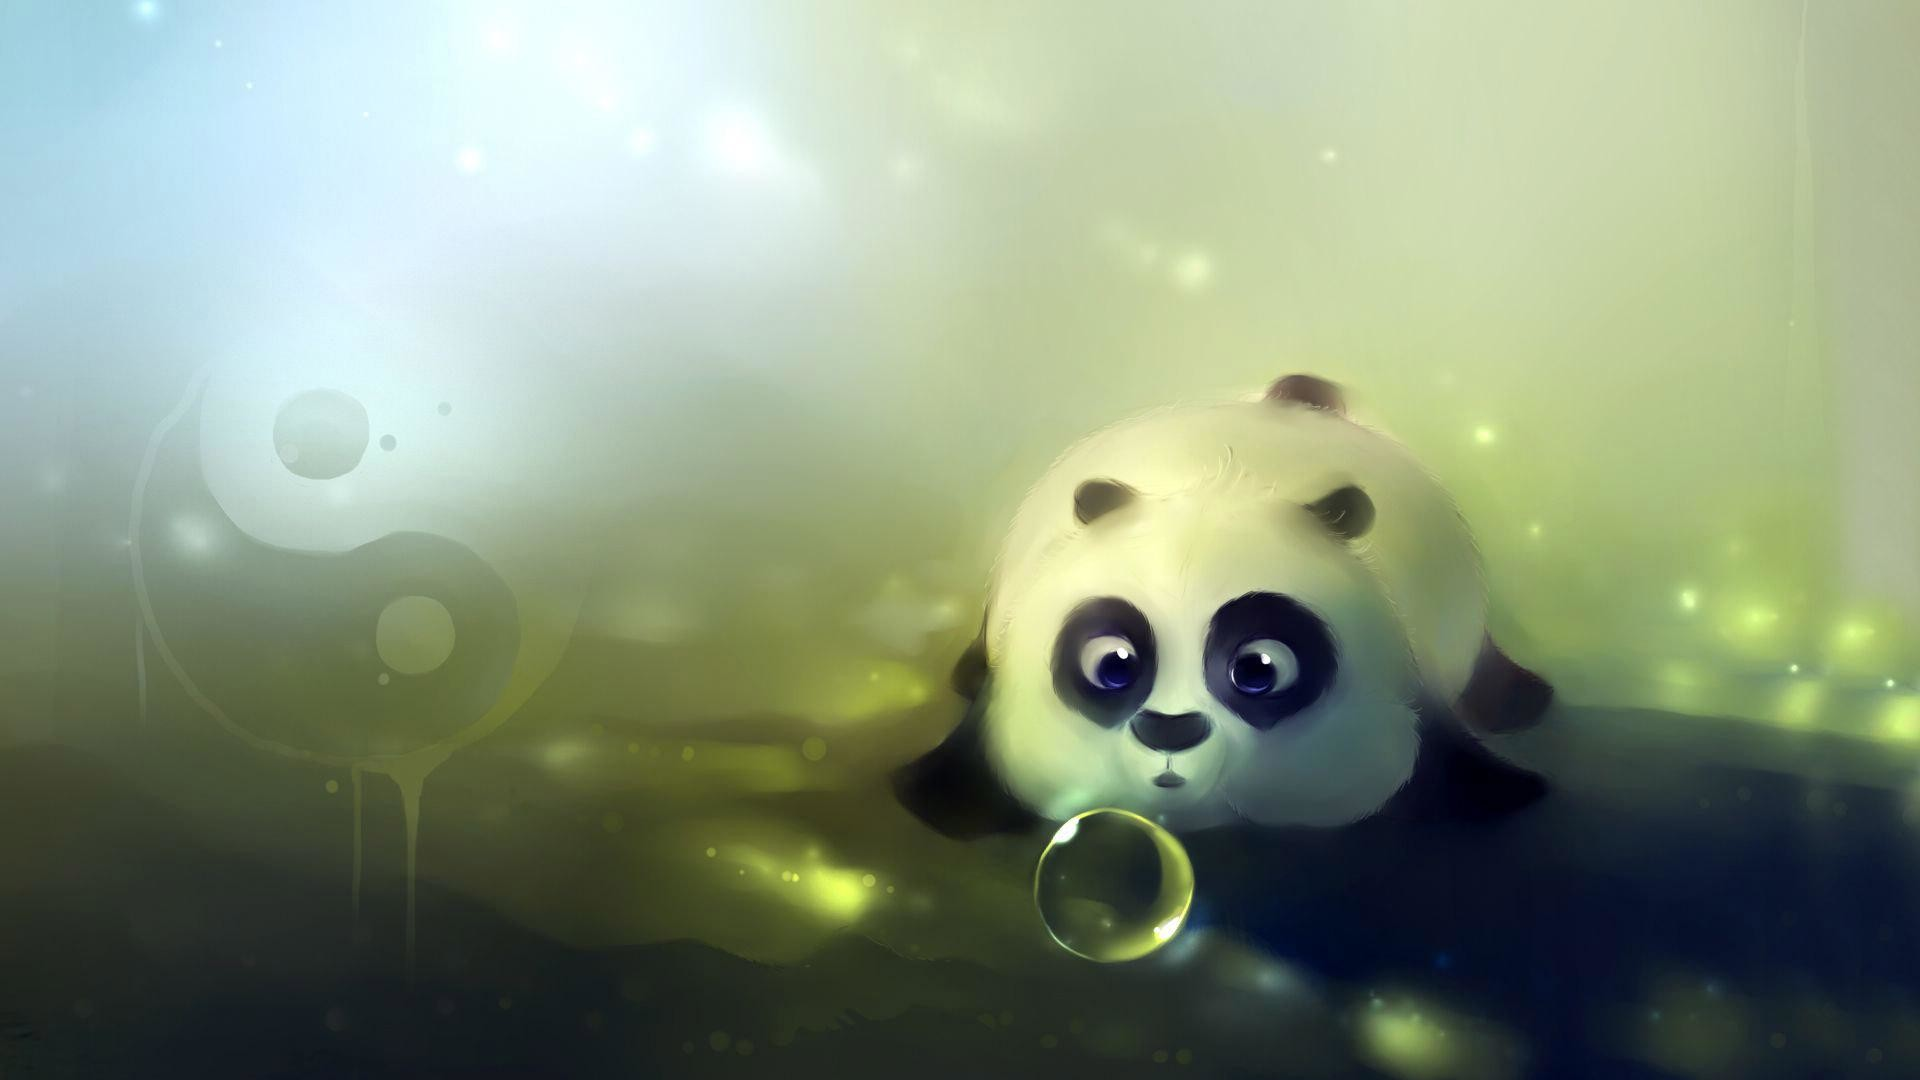 Res: 1920x1080, Cute Laptop Wallpapers Free Download. Click on the image to view full size  and download.